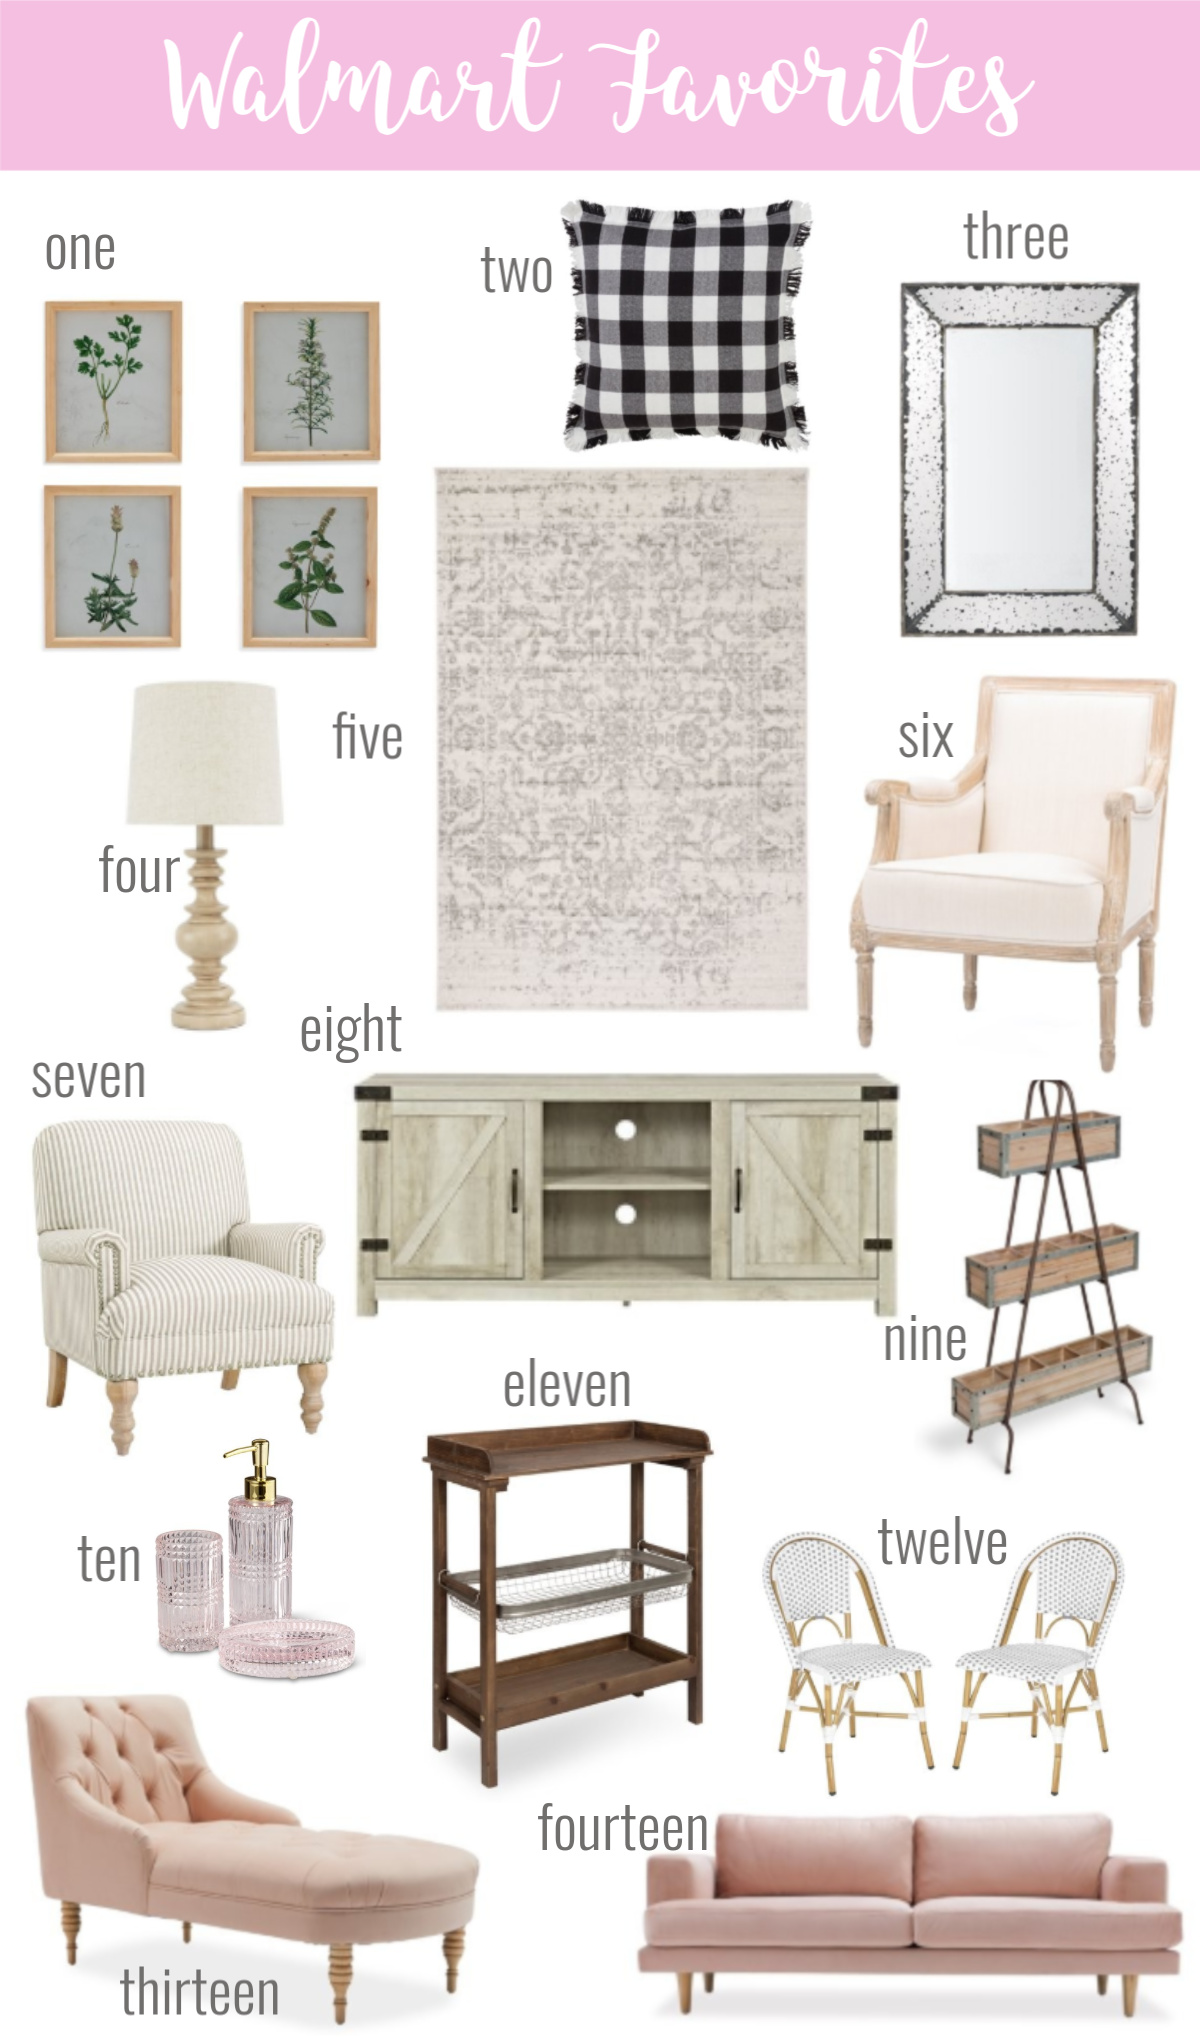 My Favorite Affordable Walmart Home Decor - Hello Gorgeous, by